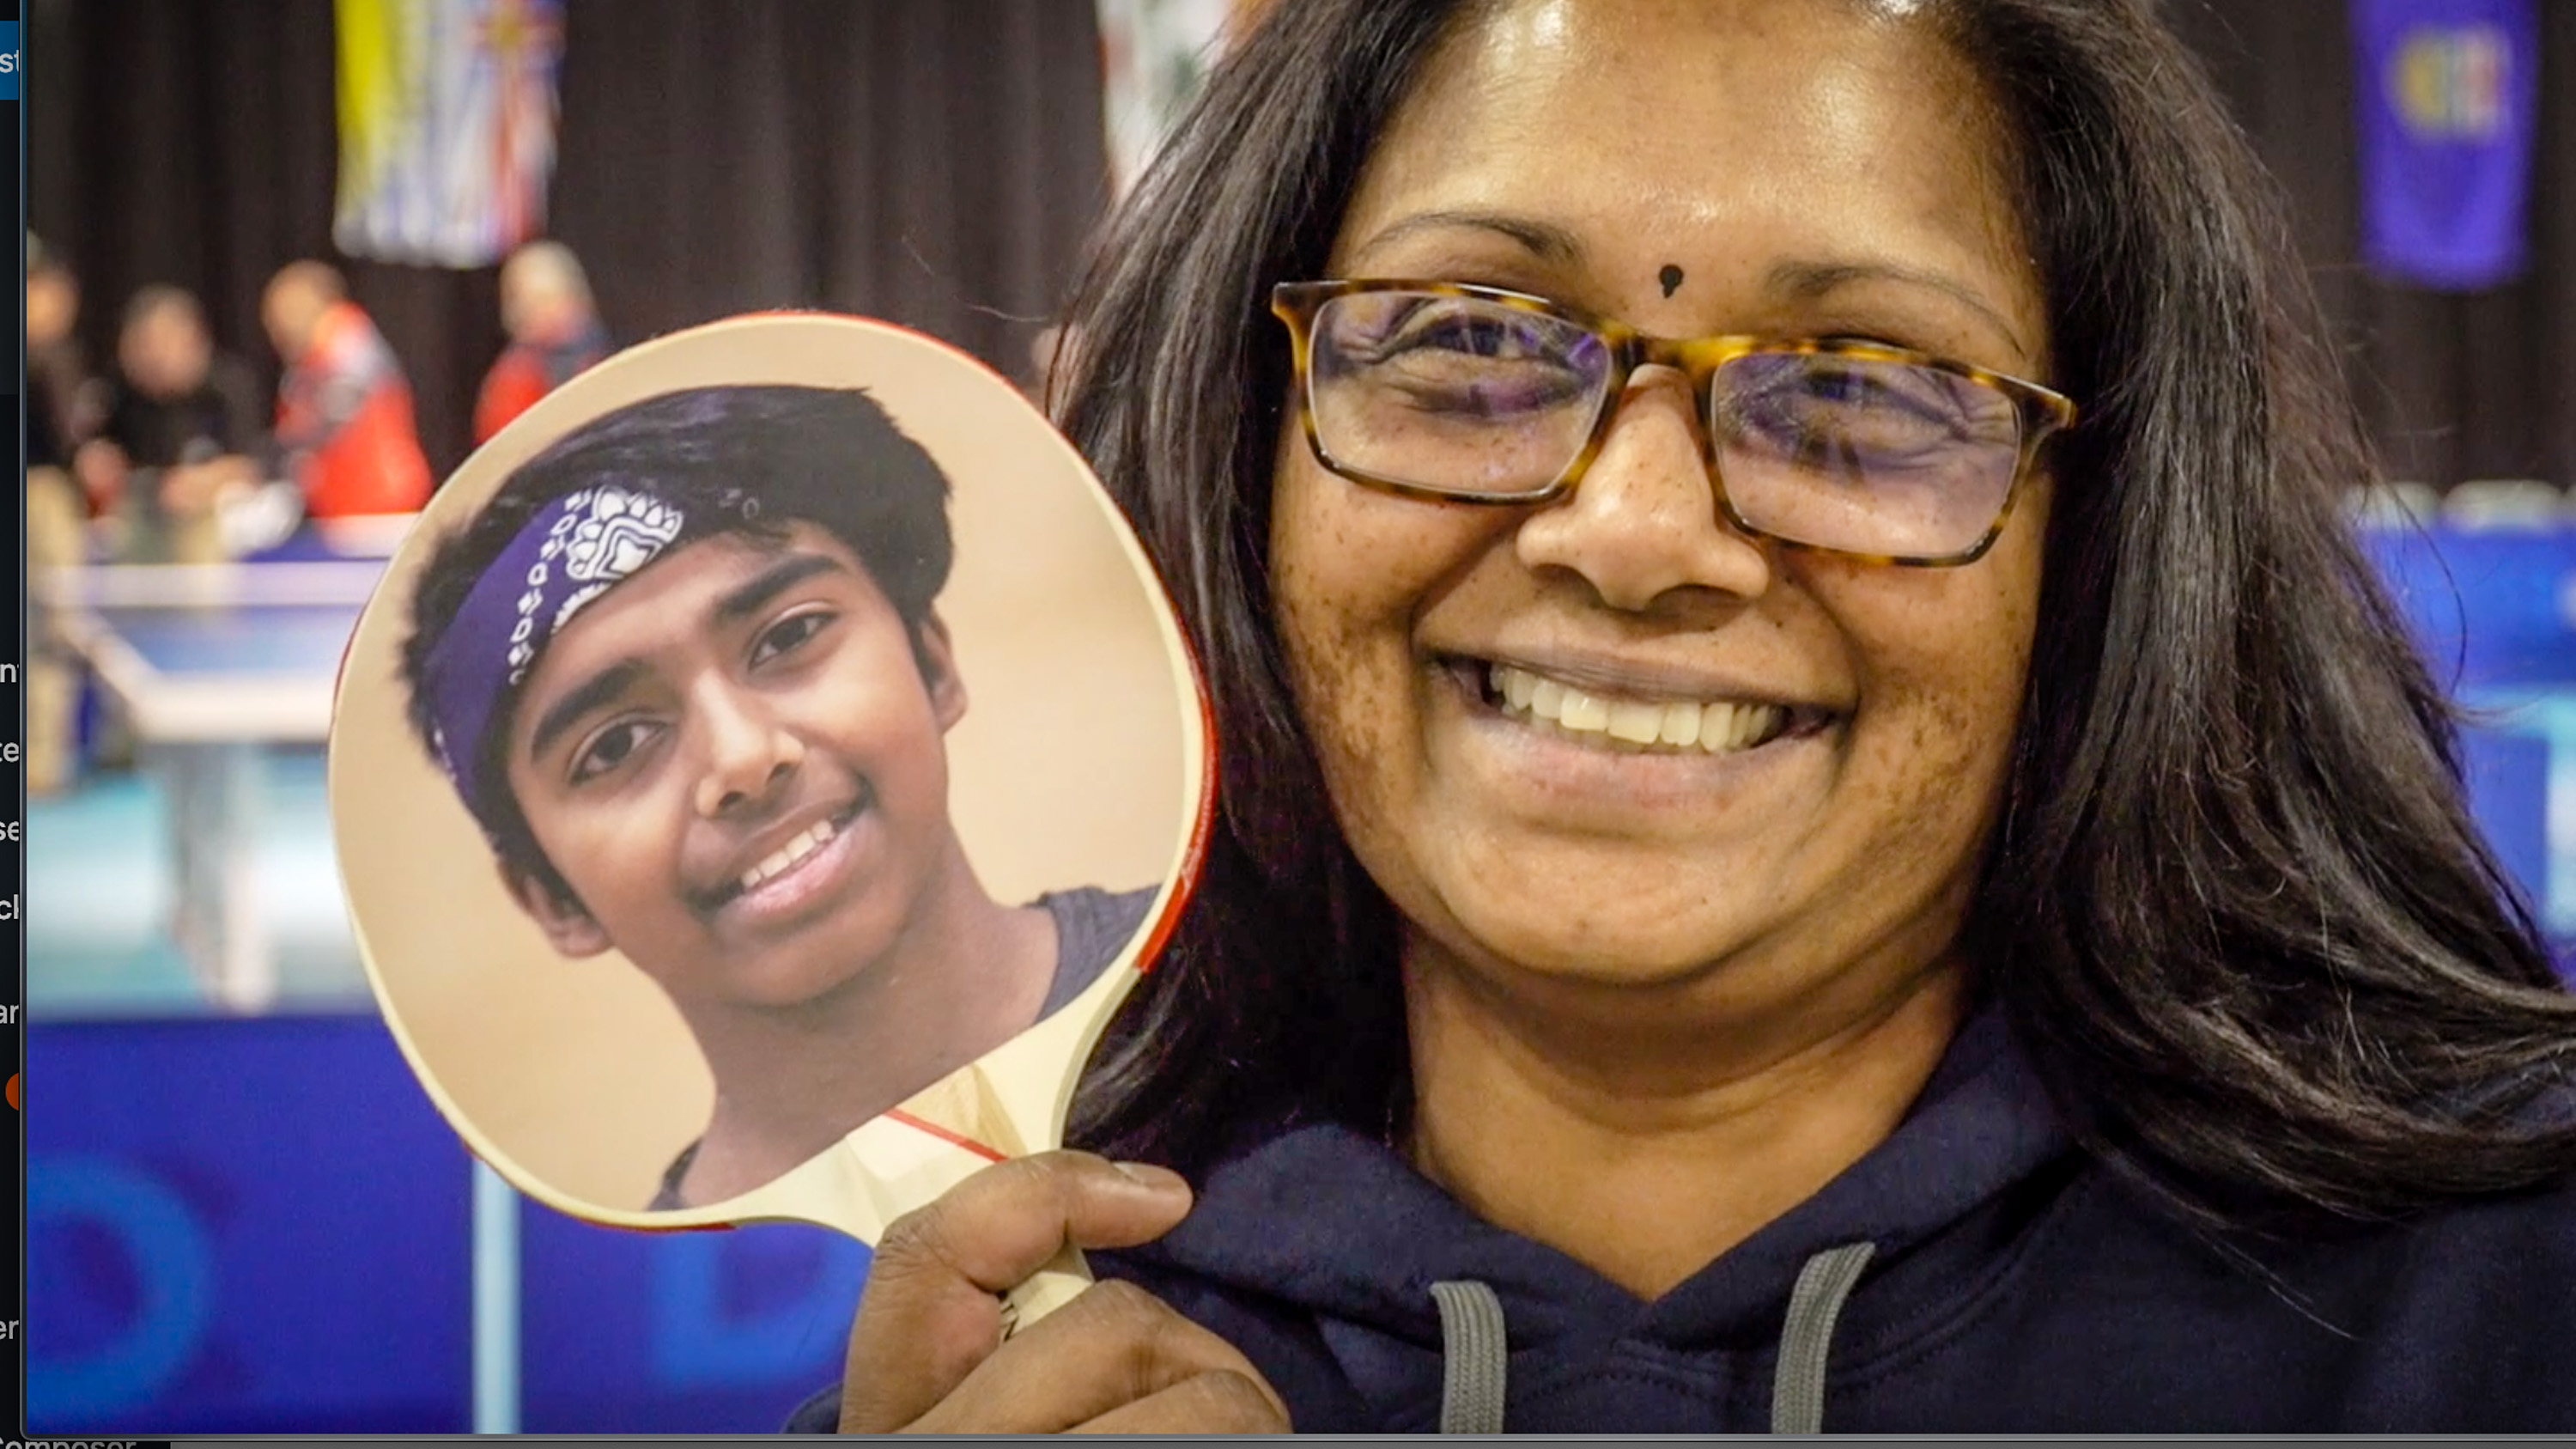 Suraiya Naidoo poses with an image of her son's face on a table tennis racket